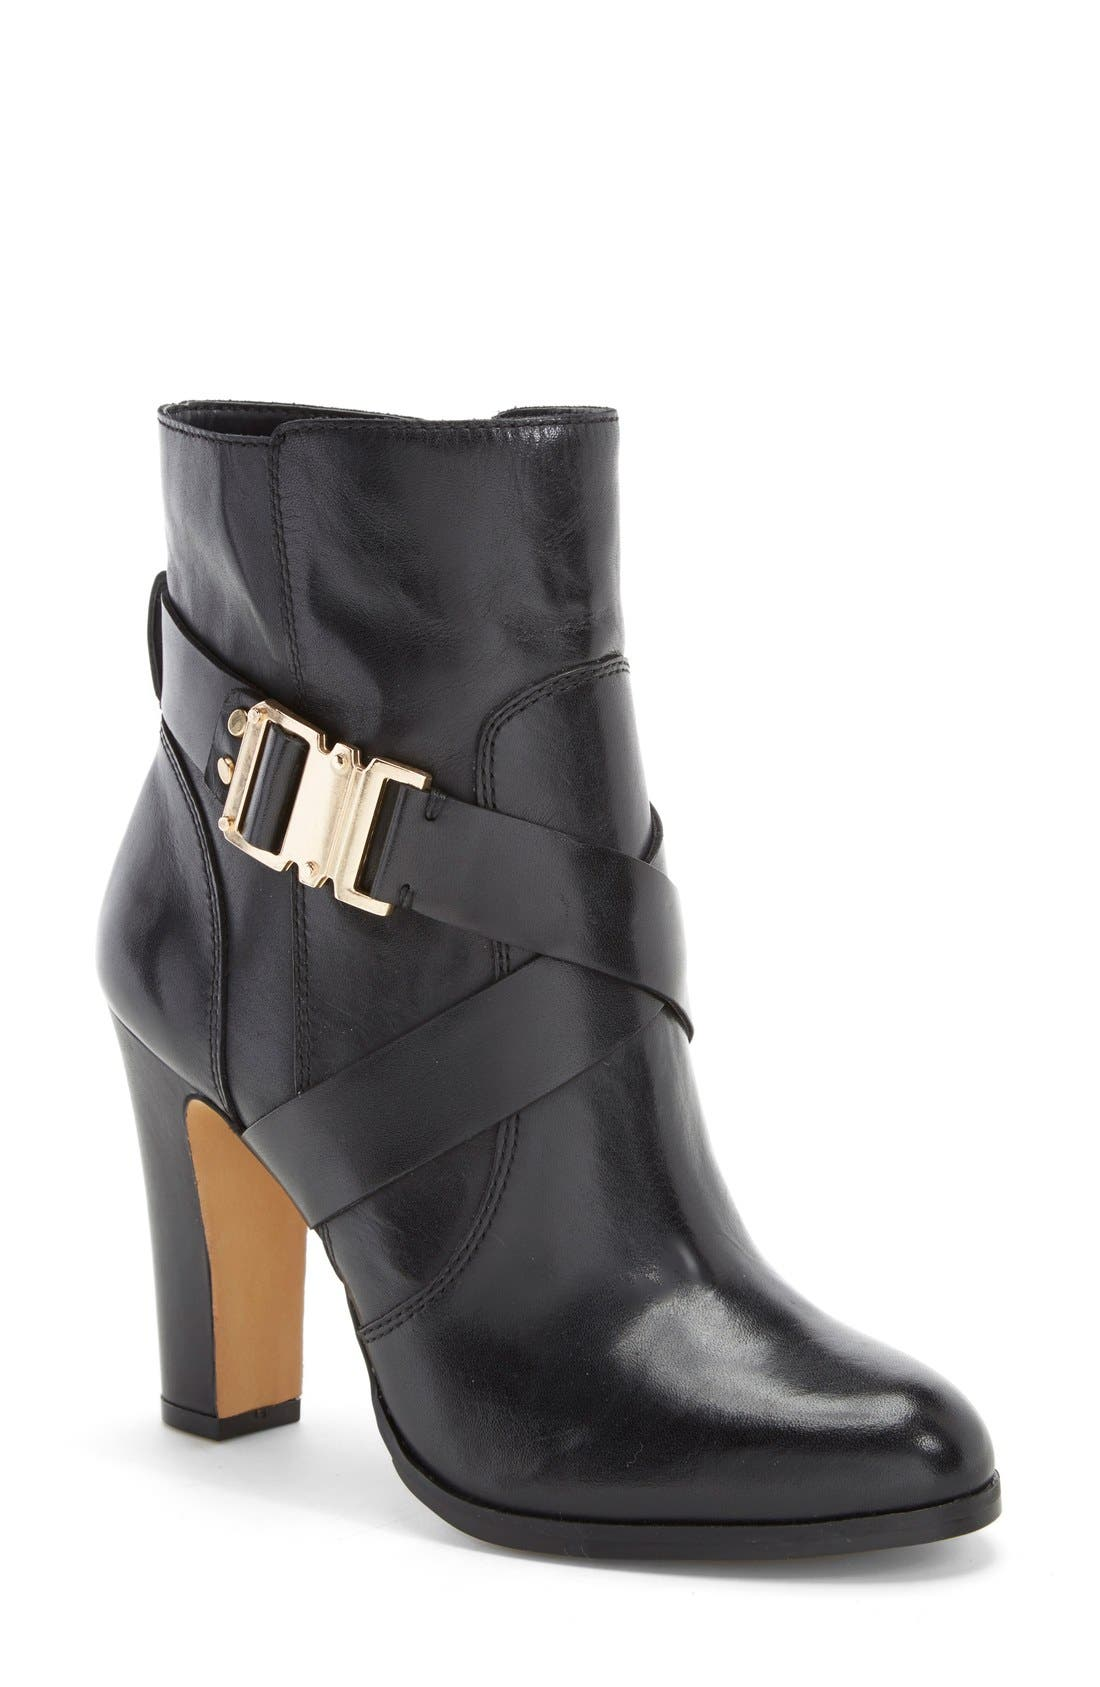 'Connolly' Belted Boot,                             Main thumbnail 1, color,                             Black Leather